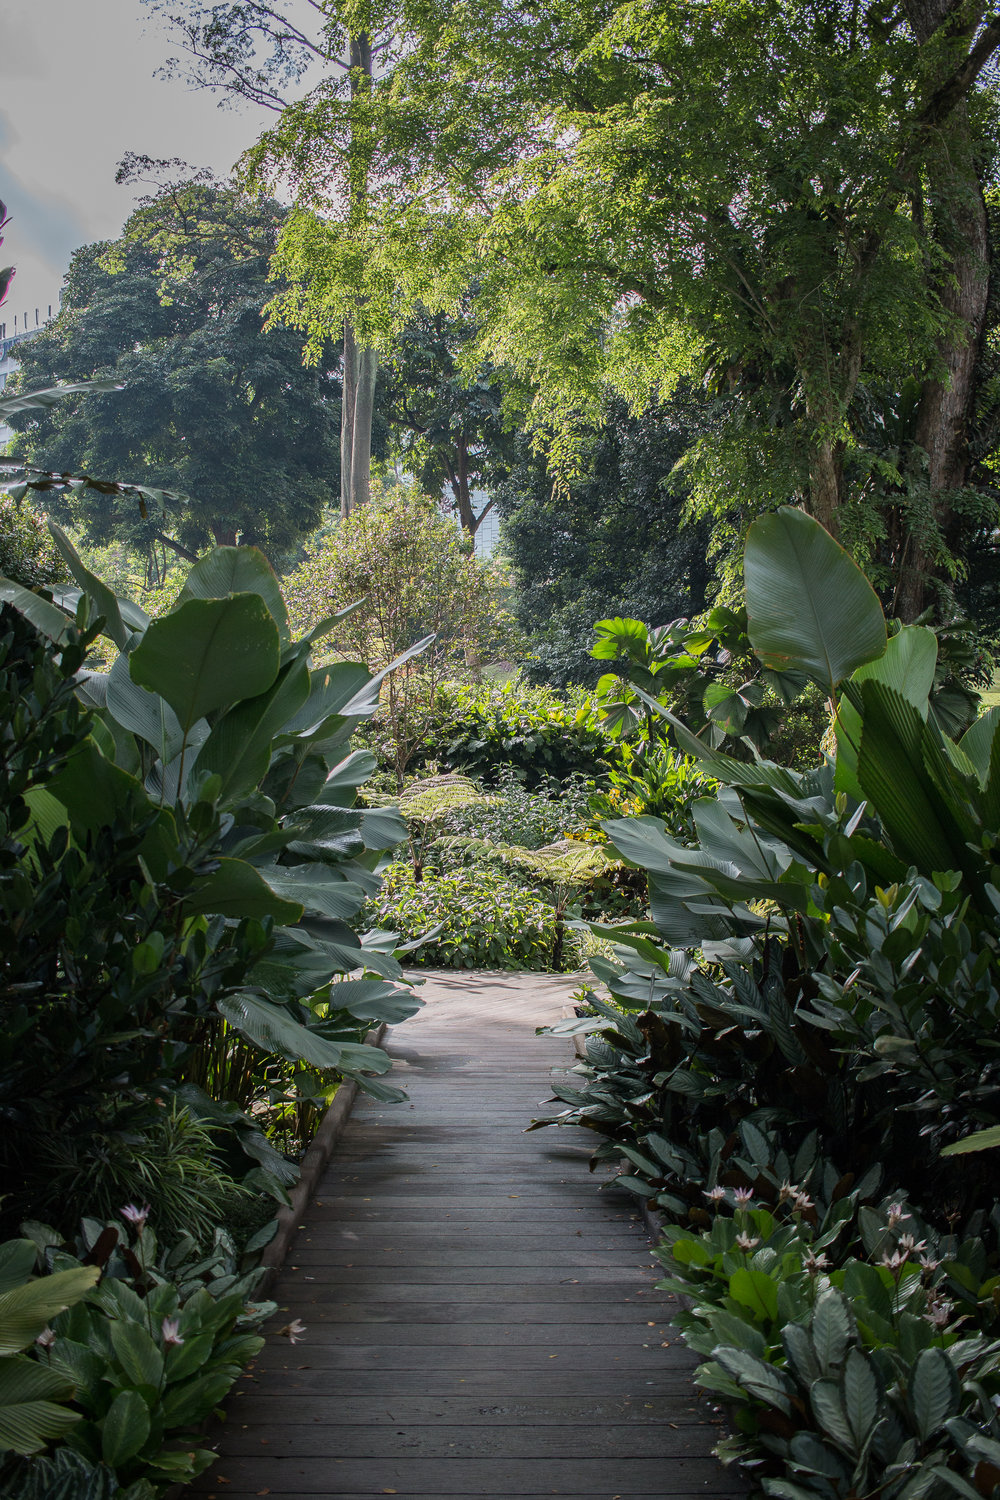 Botanical gardens photographed by Jette Virdi in Singapore